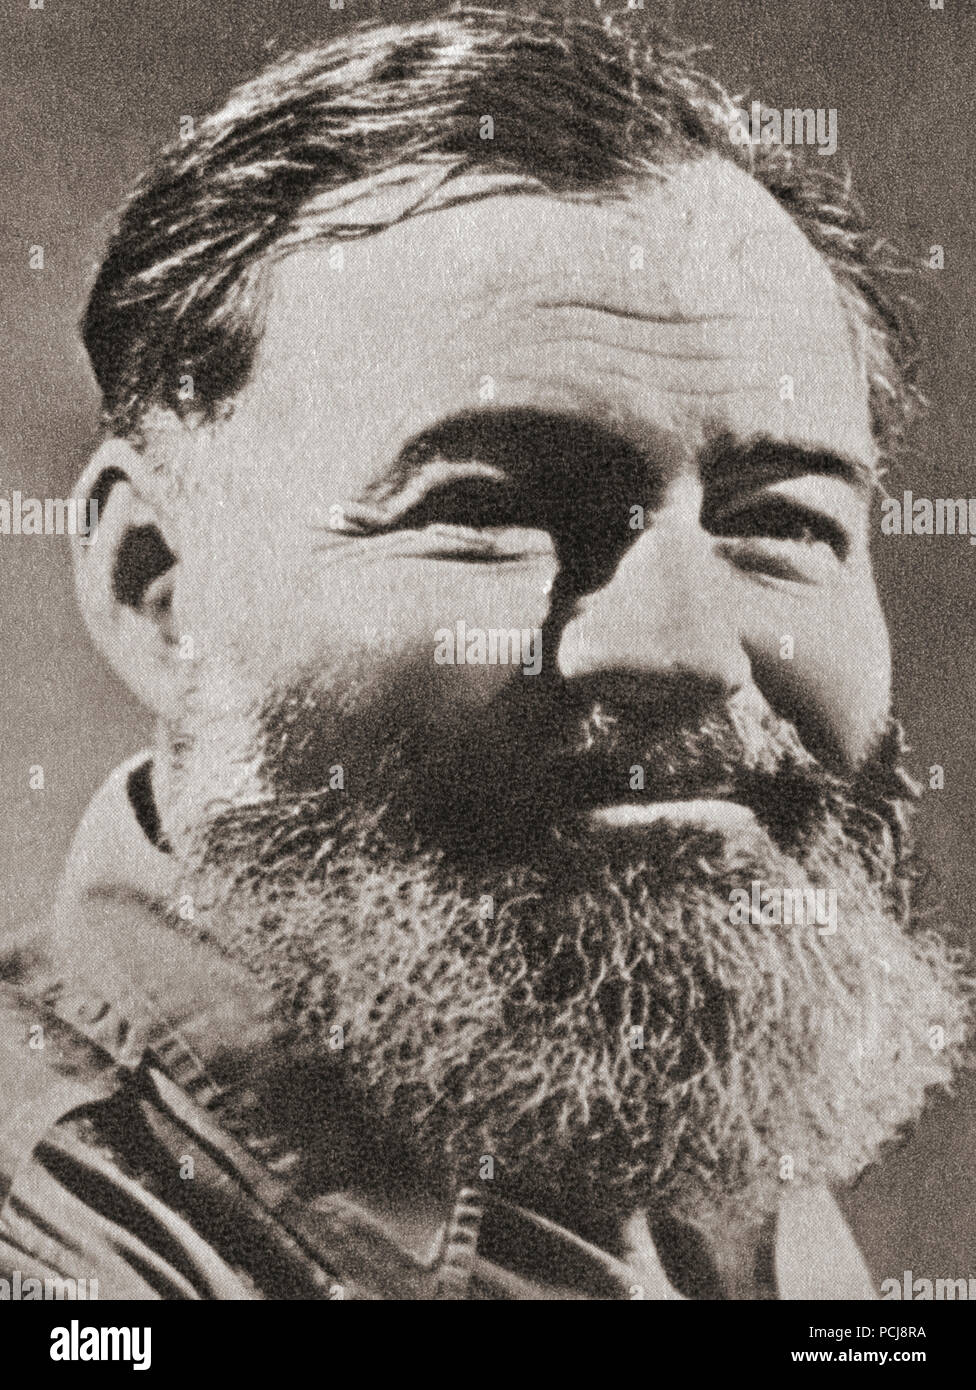 Ernest Miller Hemingway, 1899 – 1961. American novelist, short story writer, journalist and winner of the Nobel Prize in Literature,1954.  After a contemporary print. - Stock Image